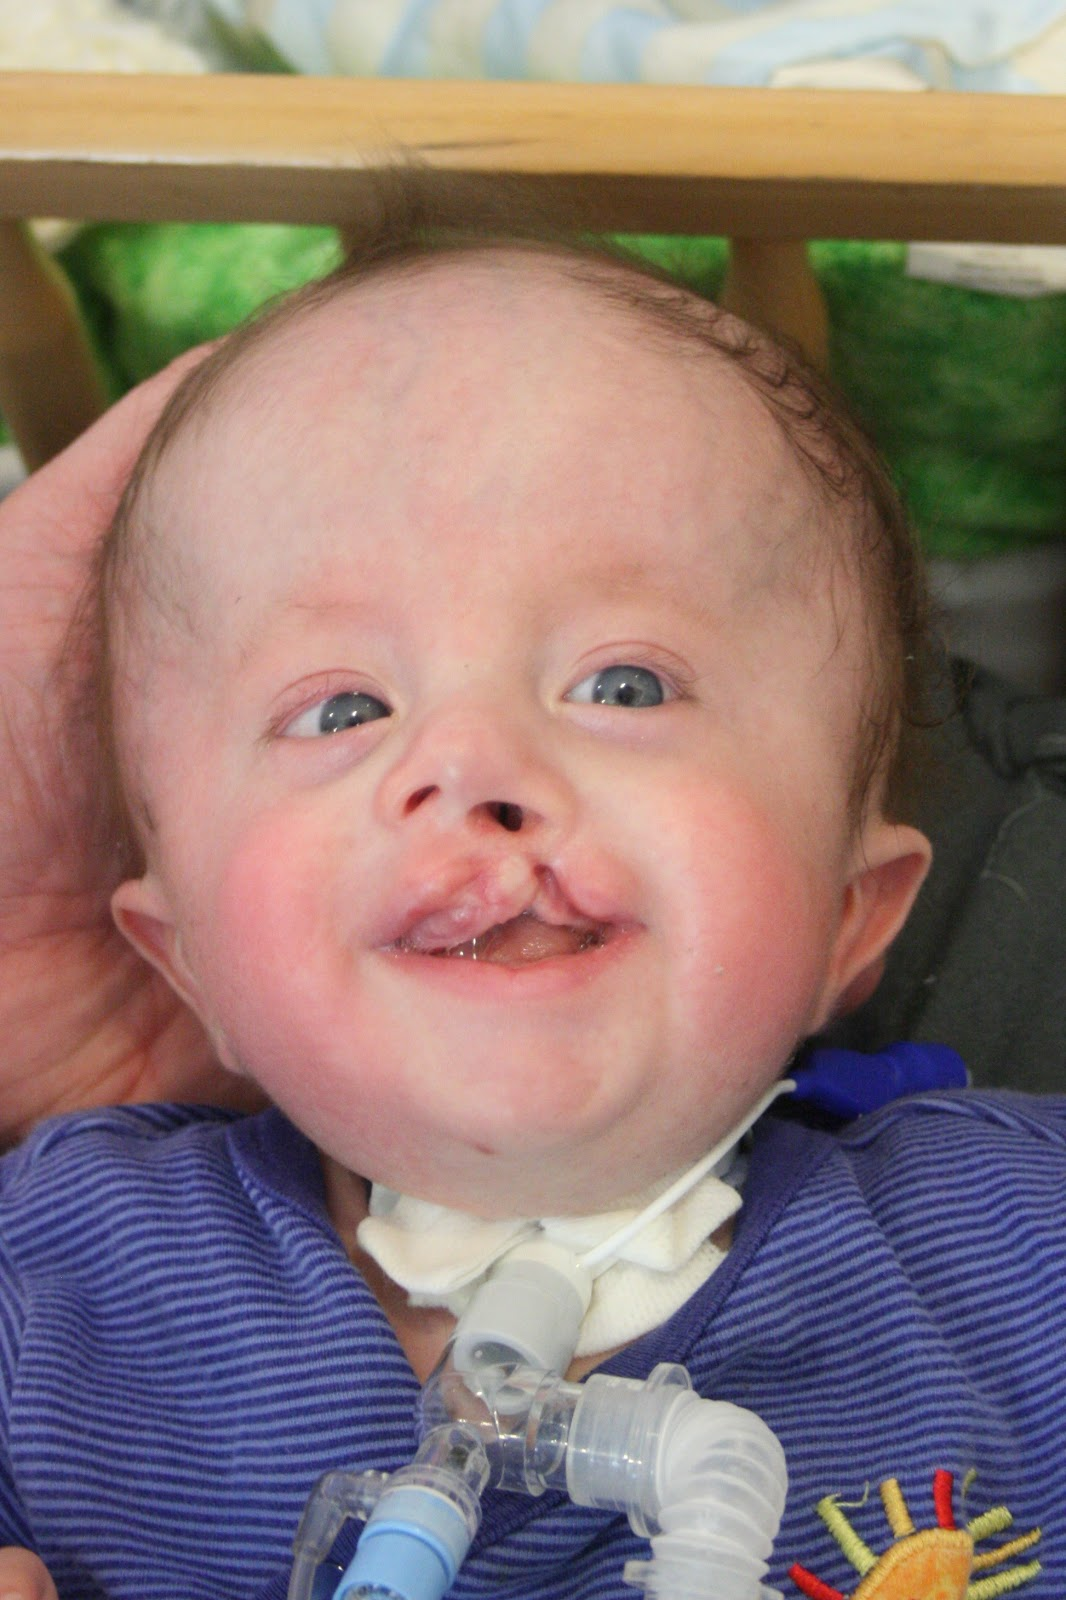 trisomy 18 Edwards' syndrome, also known as trisomy 18, is a serious genetic condition caused by an additional copy of chromosome 18 in some or all of the cells in.